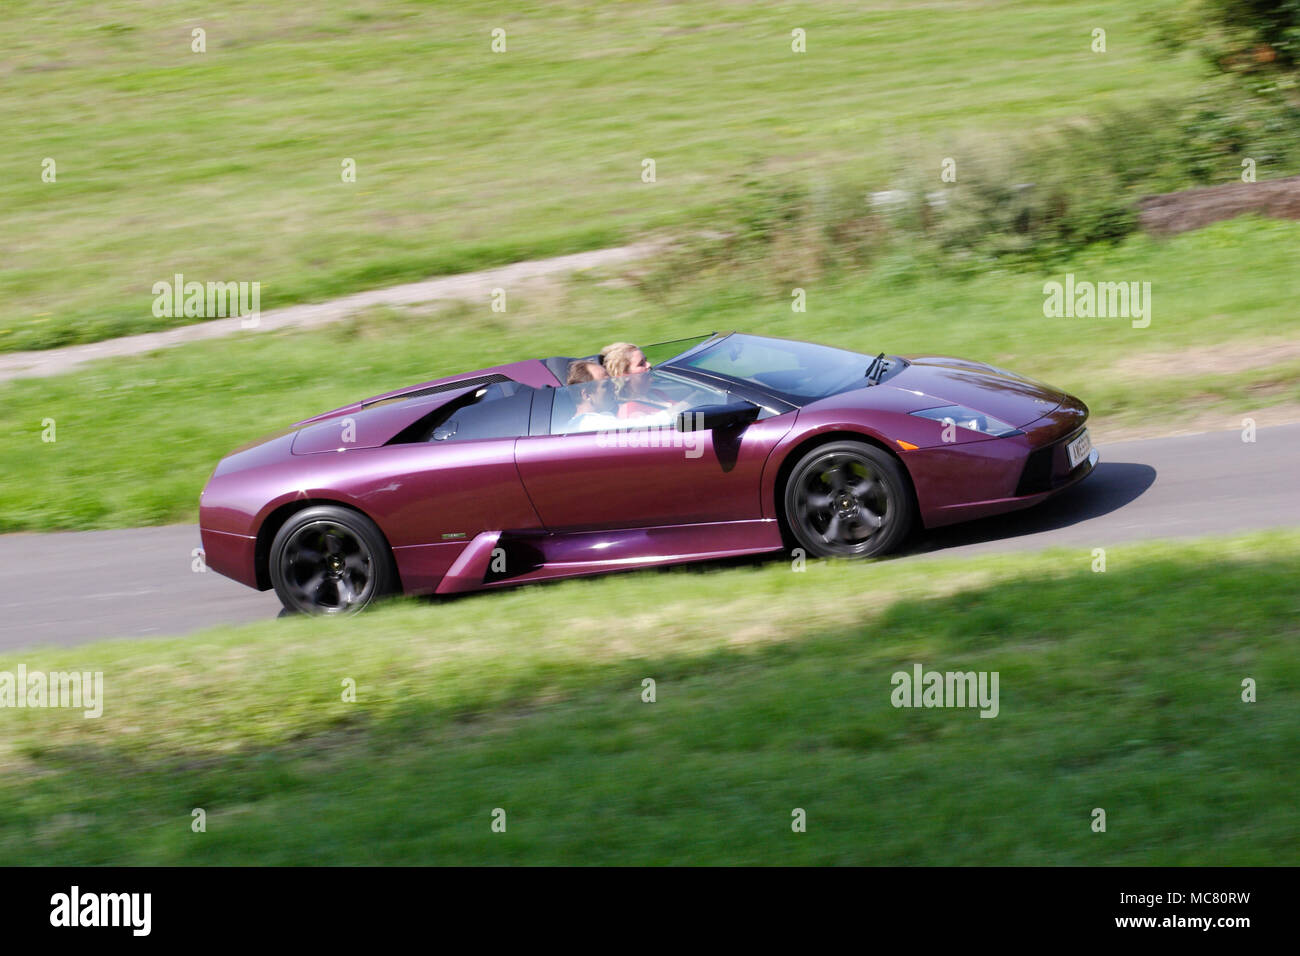 Profile Side View Of A Purple Lamborghini Murcielago Roadster